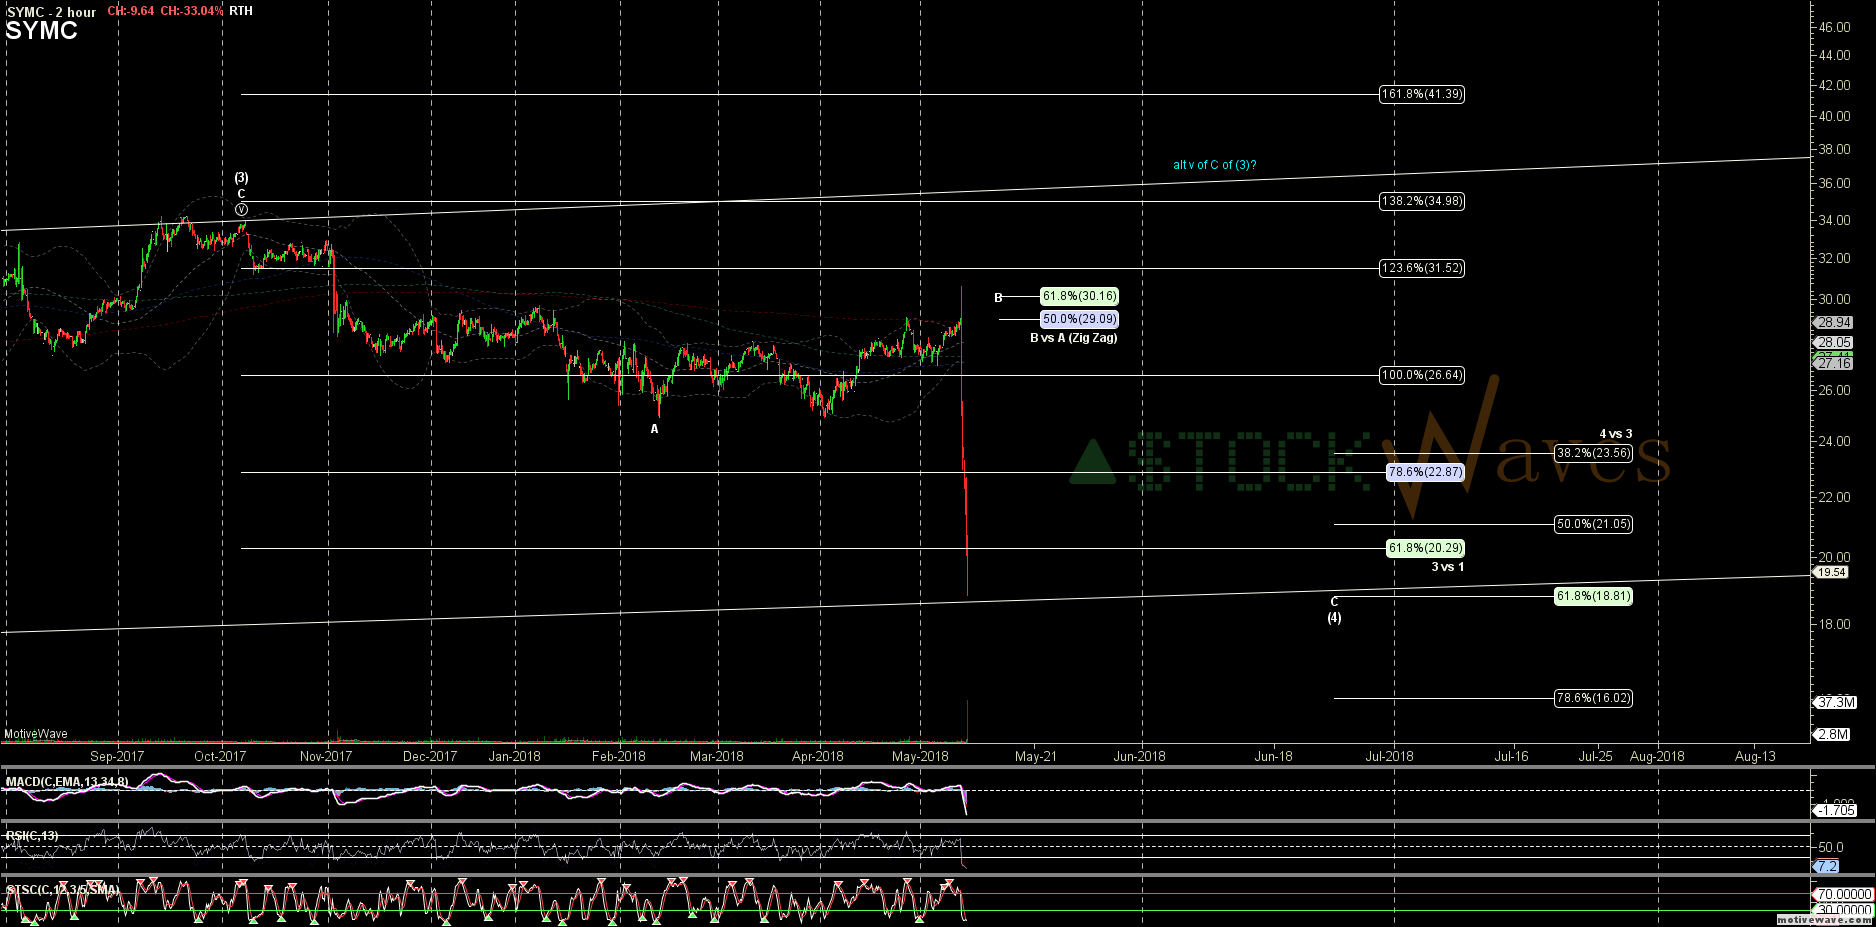 SYMC - Primary Analysis - May-11 1013 AM (2 hour)